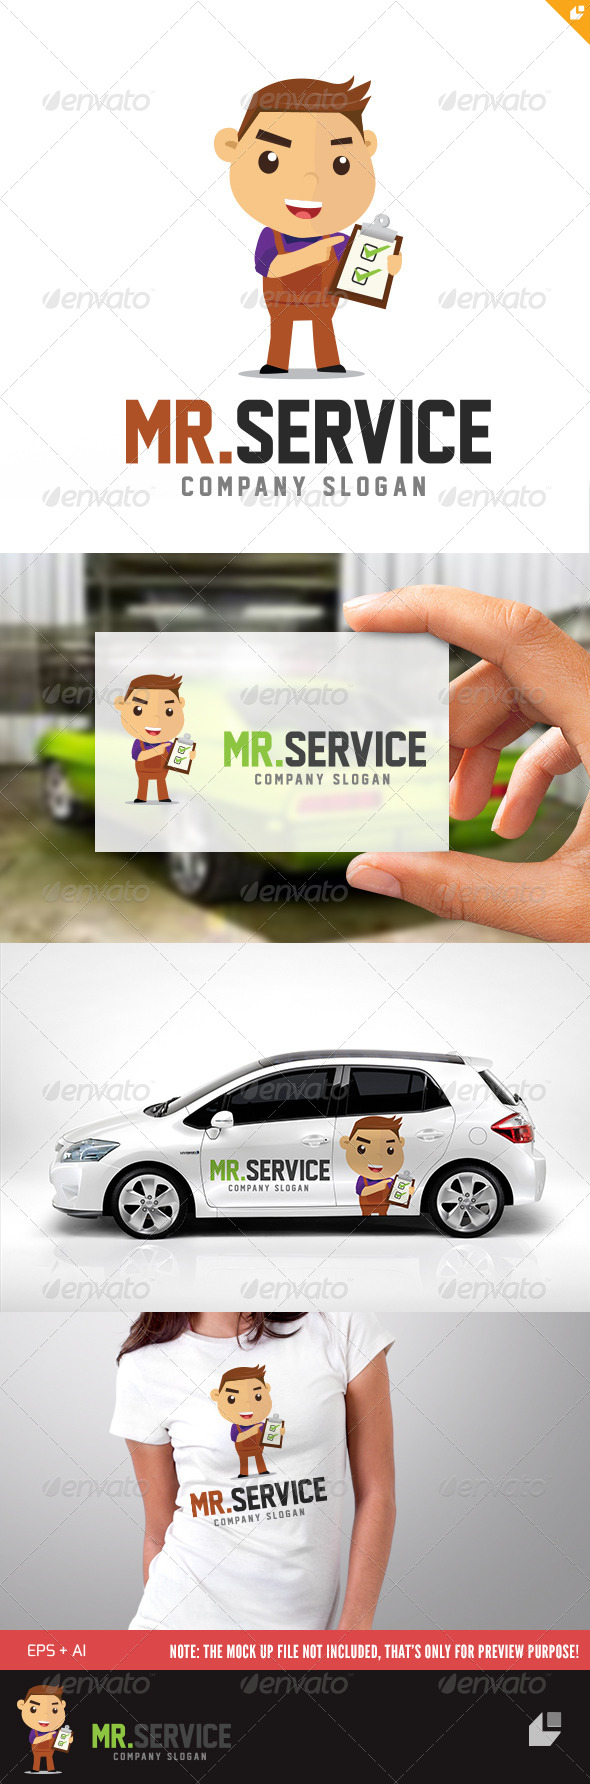 GraphicRiver Mr Services Logo 5637220